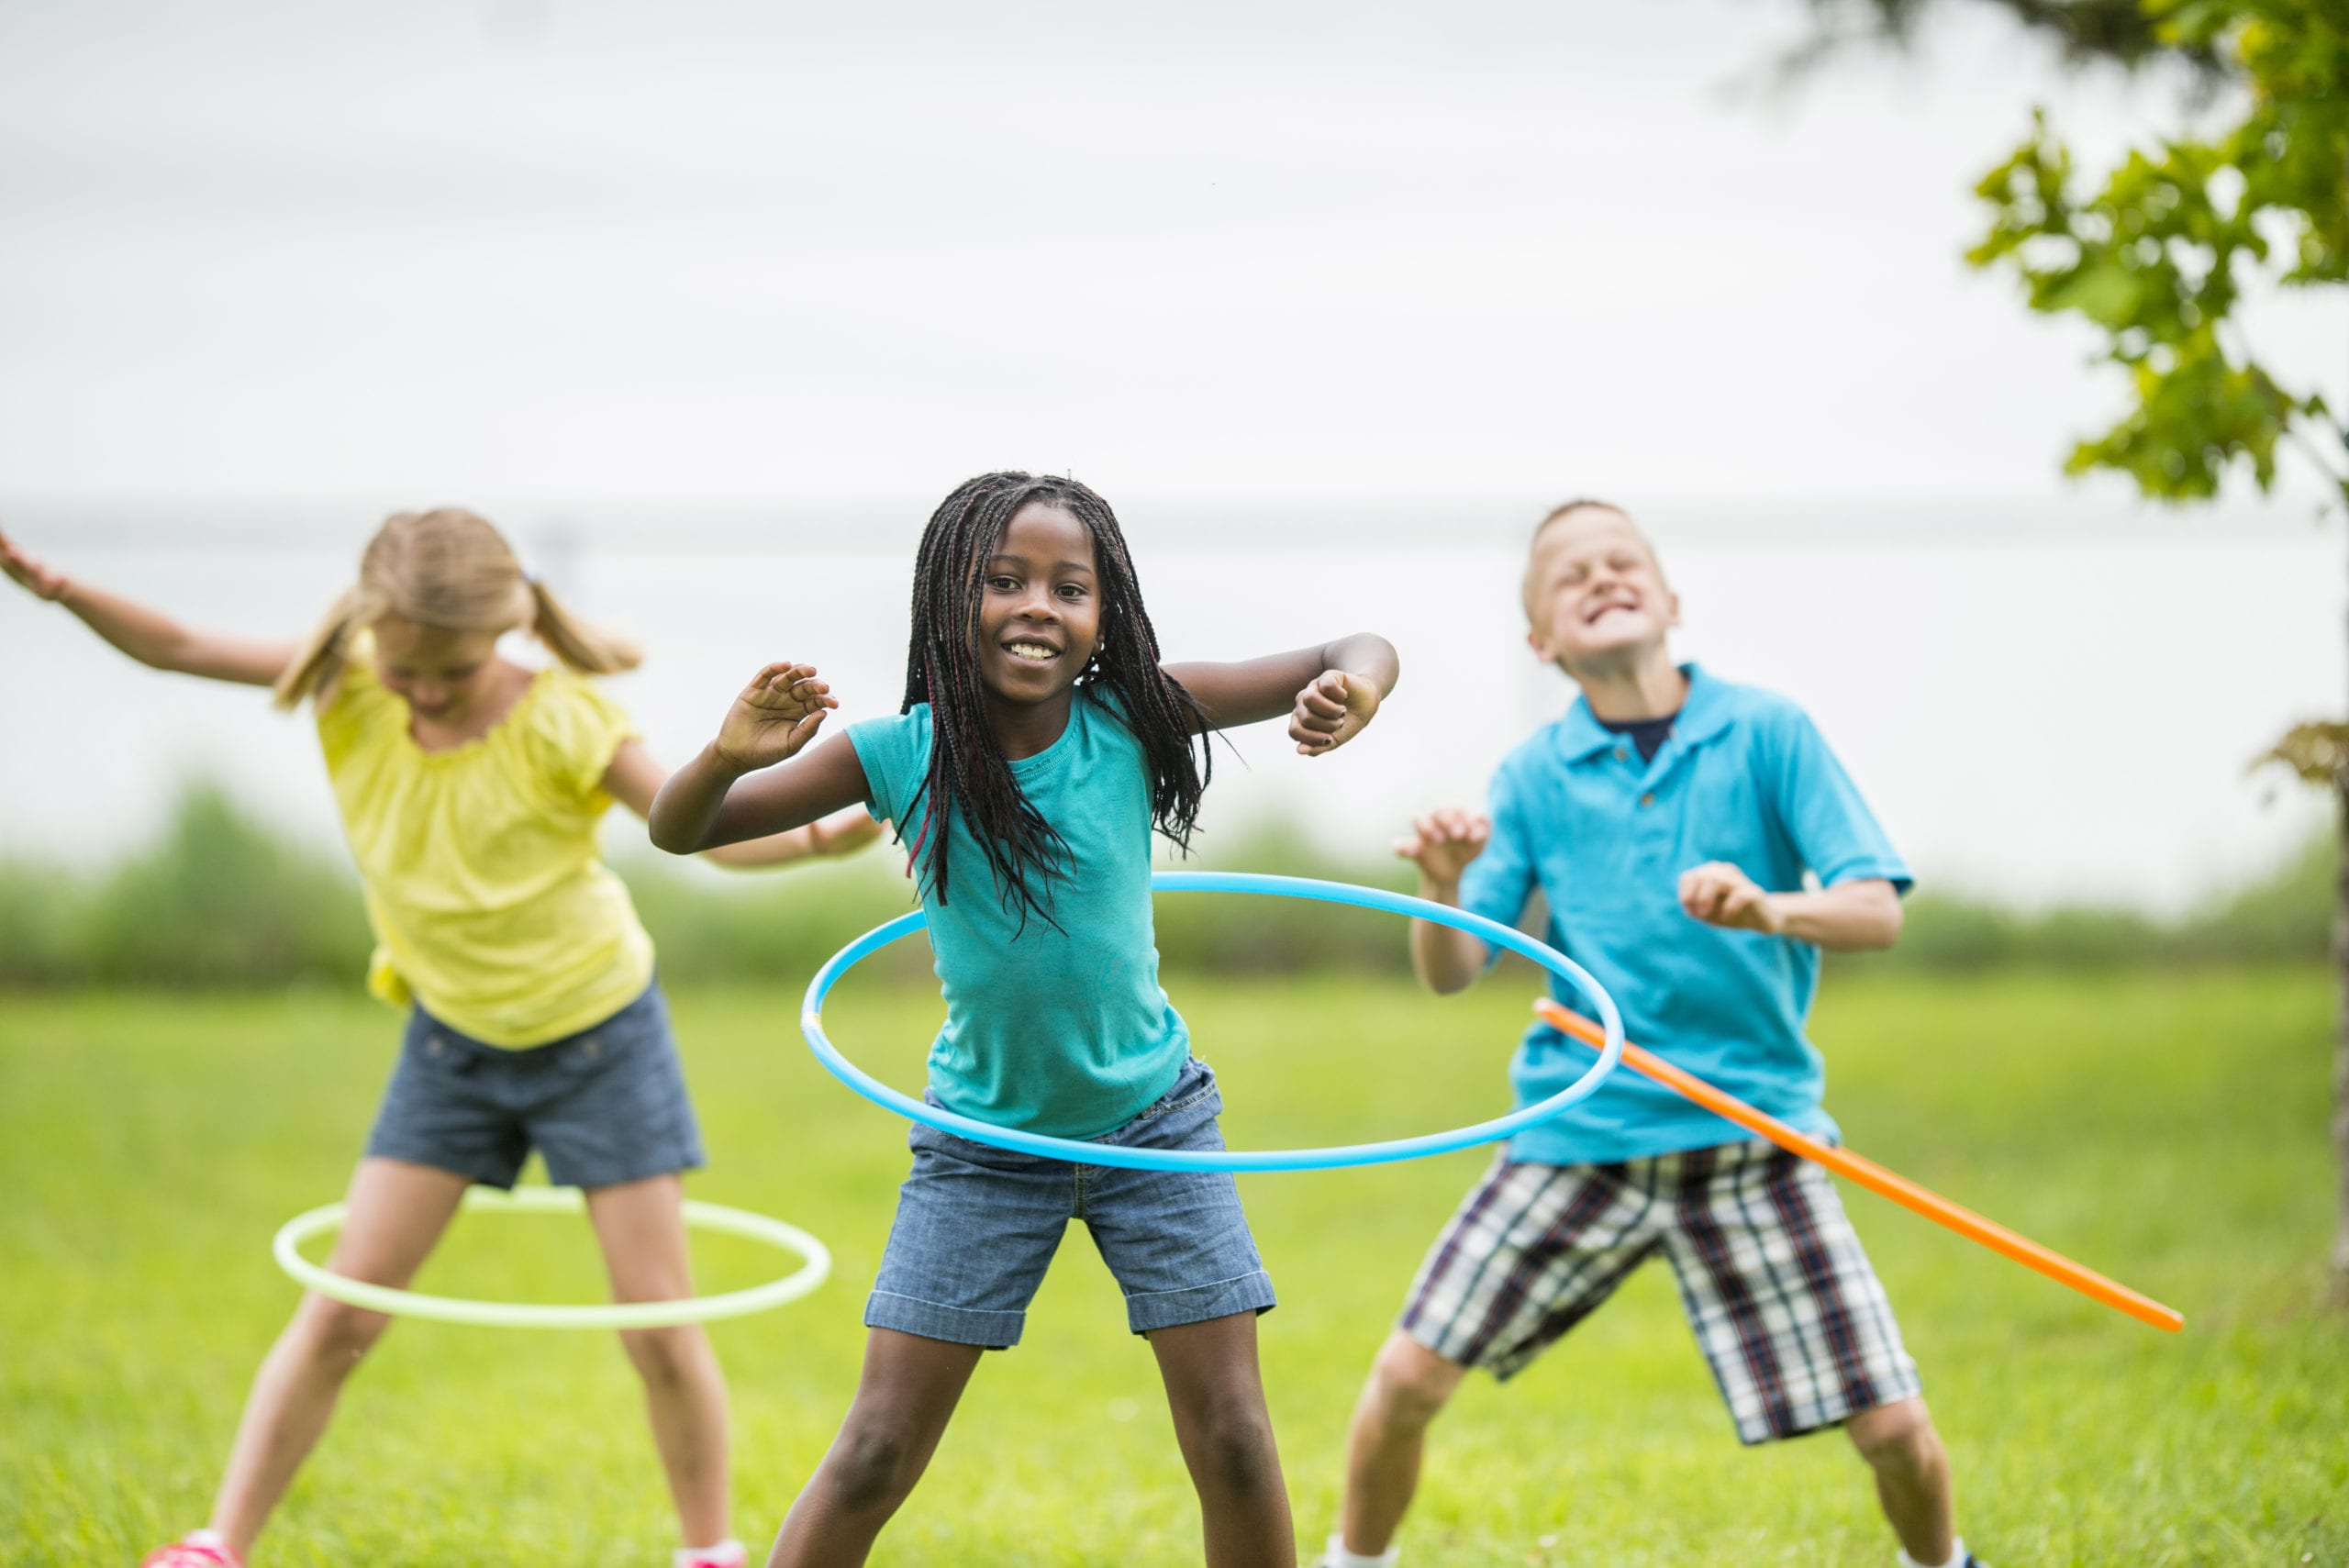 Competitive Stroke: Ages 6 - 17 yrs  RWJ RAHWAY FITNESS & WELLNESS AT CARTERET